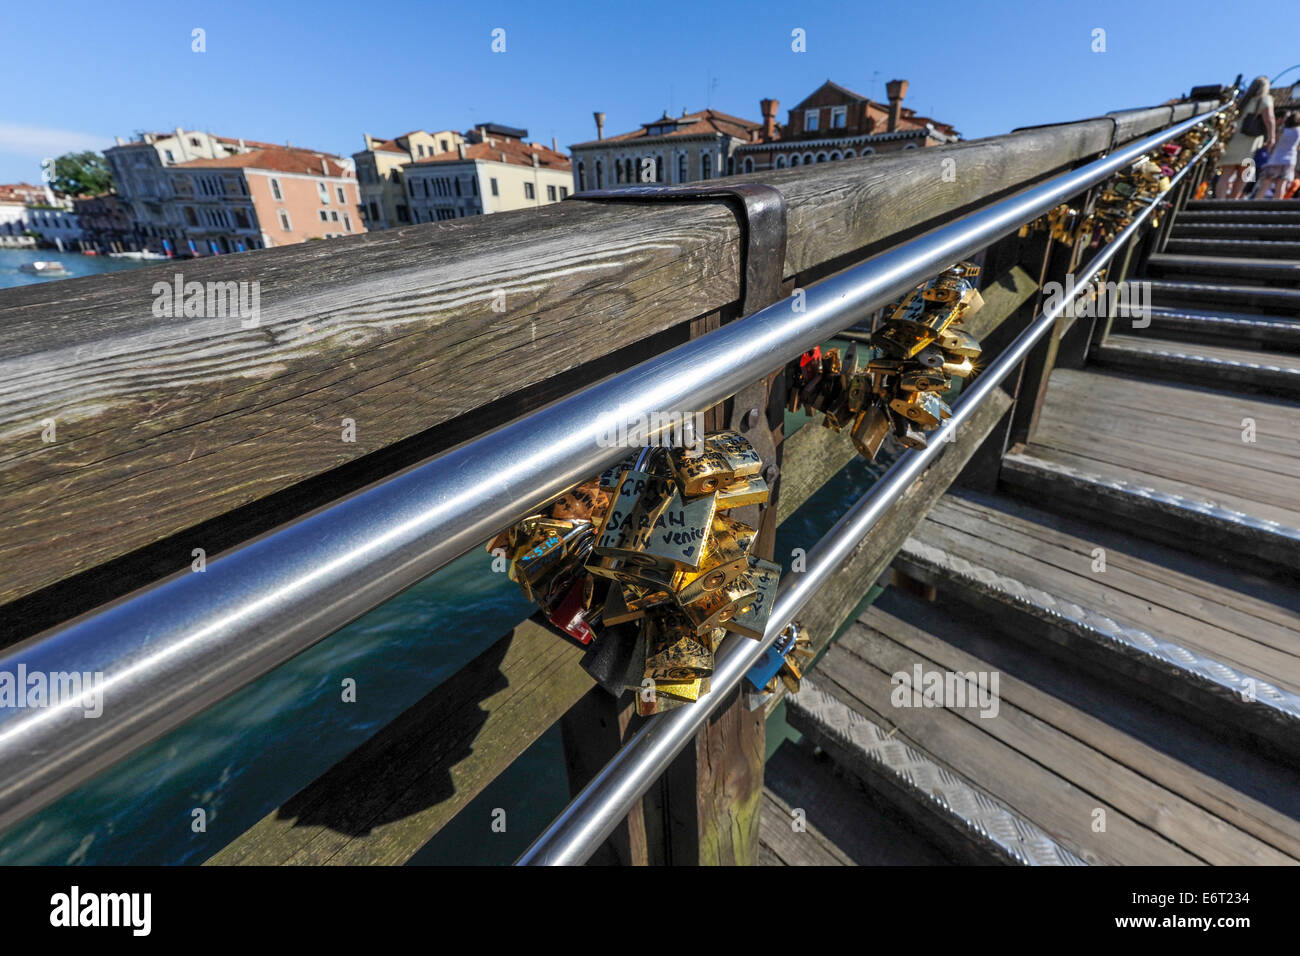 Love padlocks on the Ponte di Academia or the academia bridge which spans the Grand canal in Venice, Italy. - Stock Image